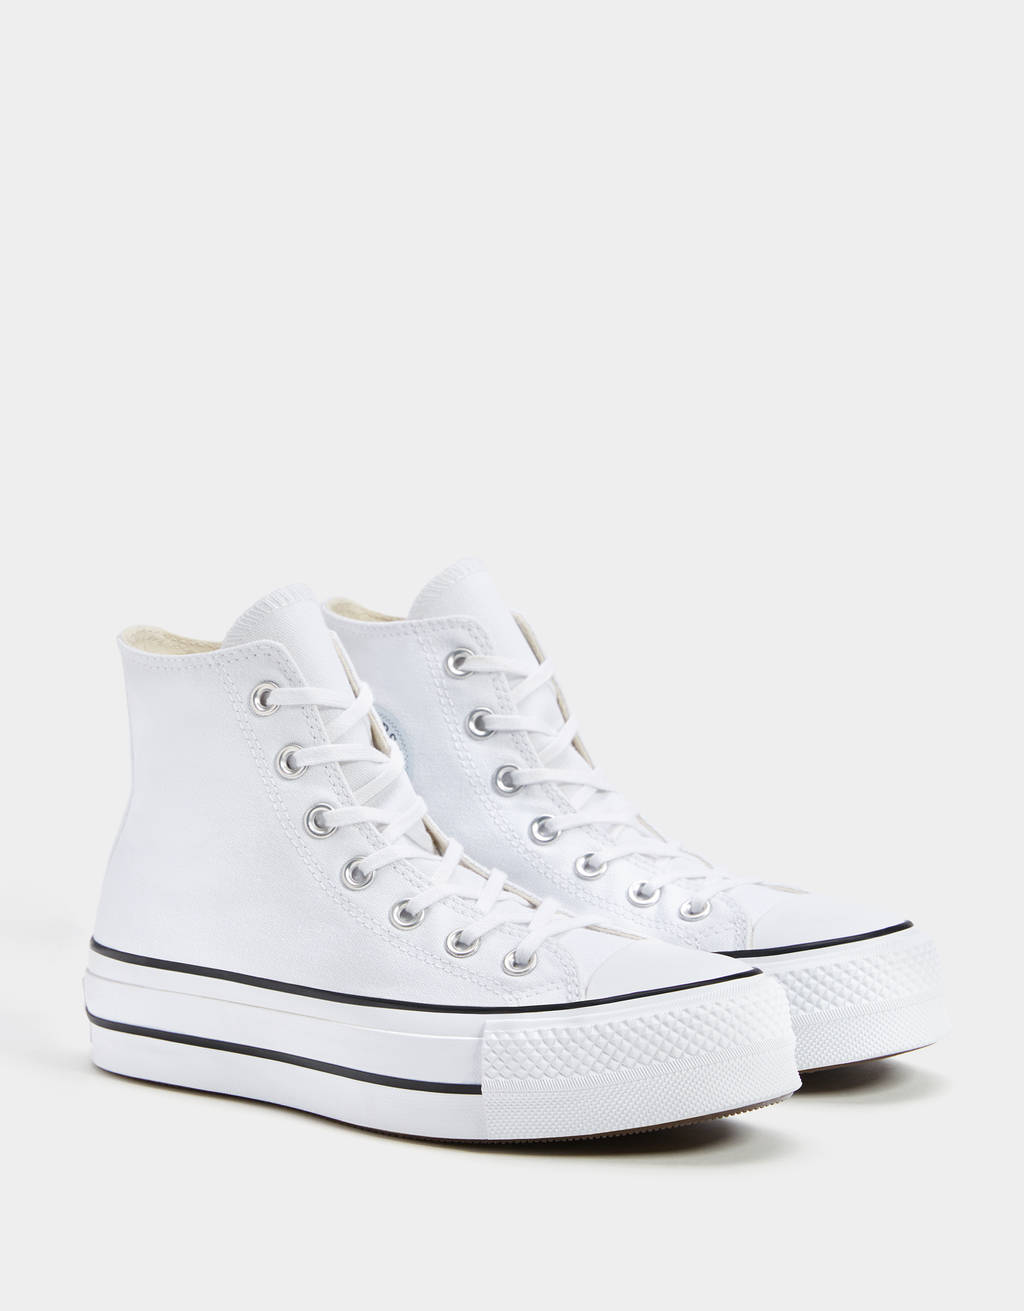 f4072409685 Witte All Stars Hoog | Converse Chuck Taylor All Star Wp Boot ...